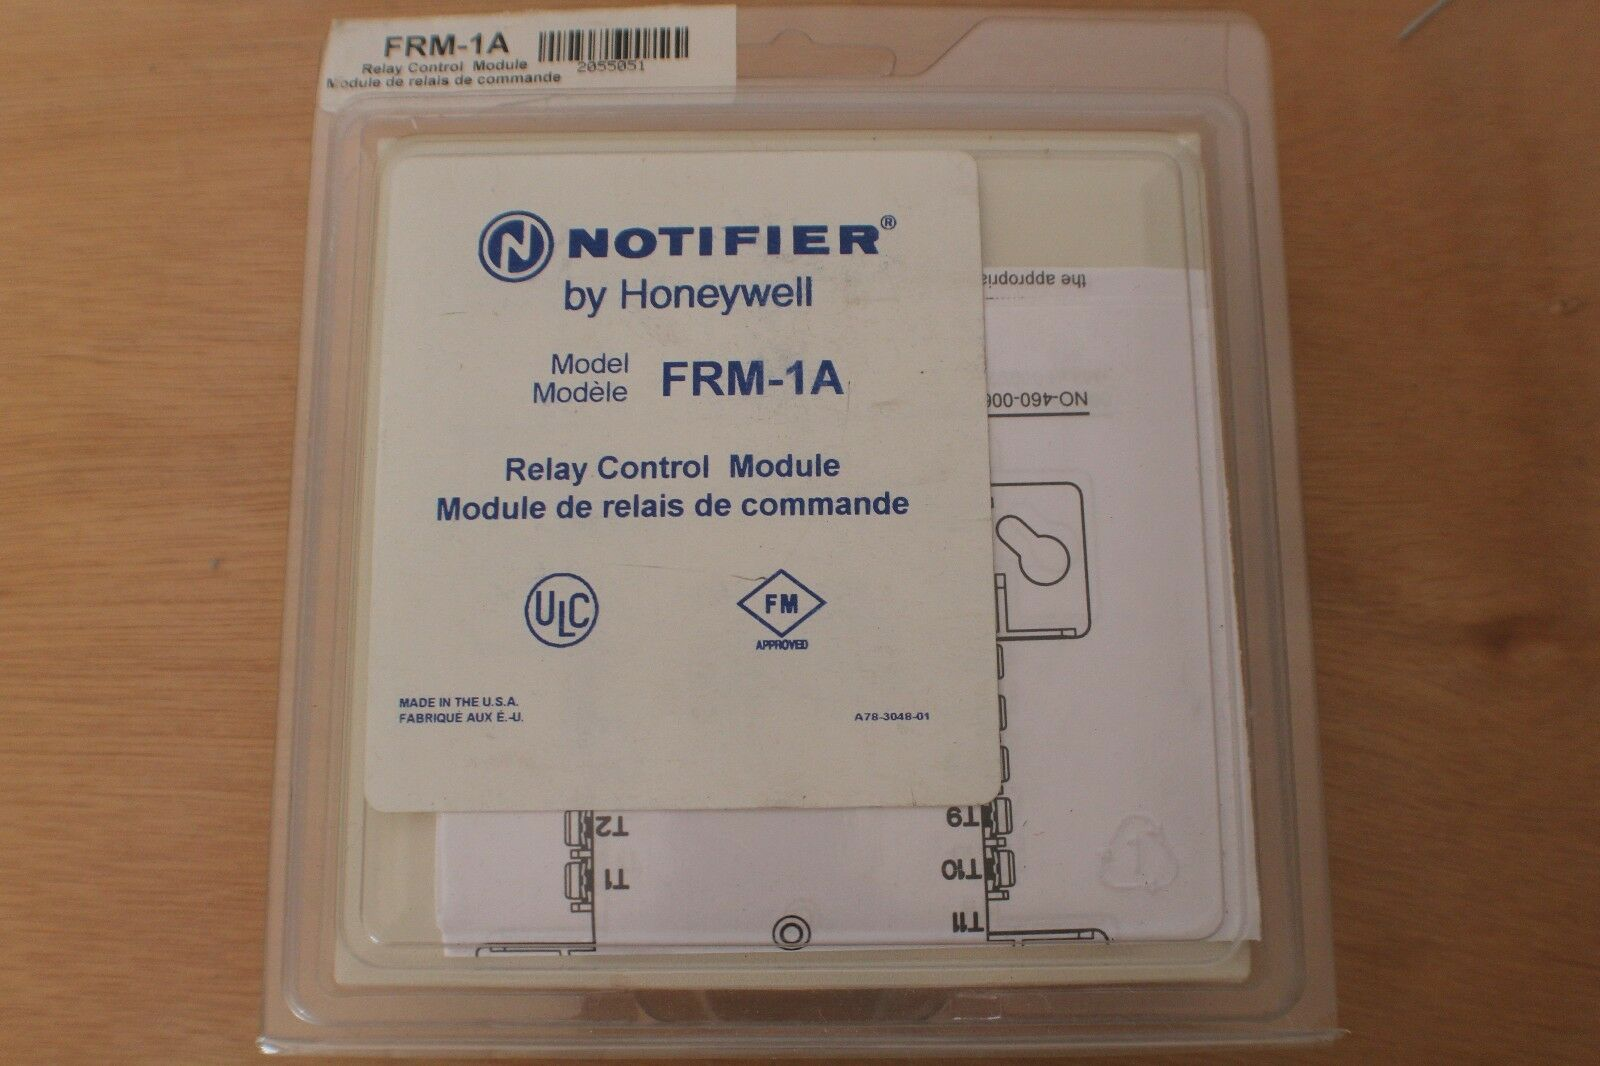 Honeywell NOTIFIER FRM 1A Relay Control Module Intelligent Address Device notifier fcm 1a wiring diagram notifier cmx 2 control module  at fashall.co